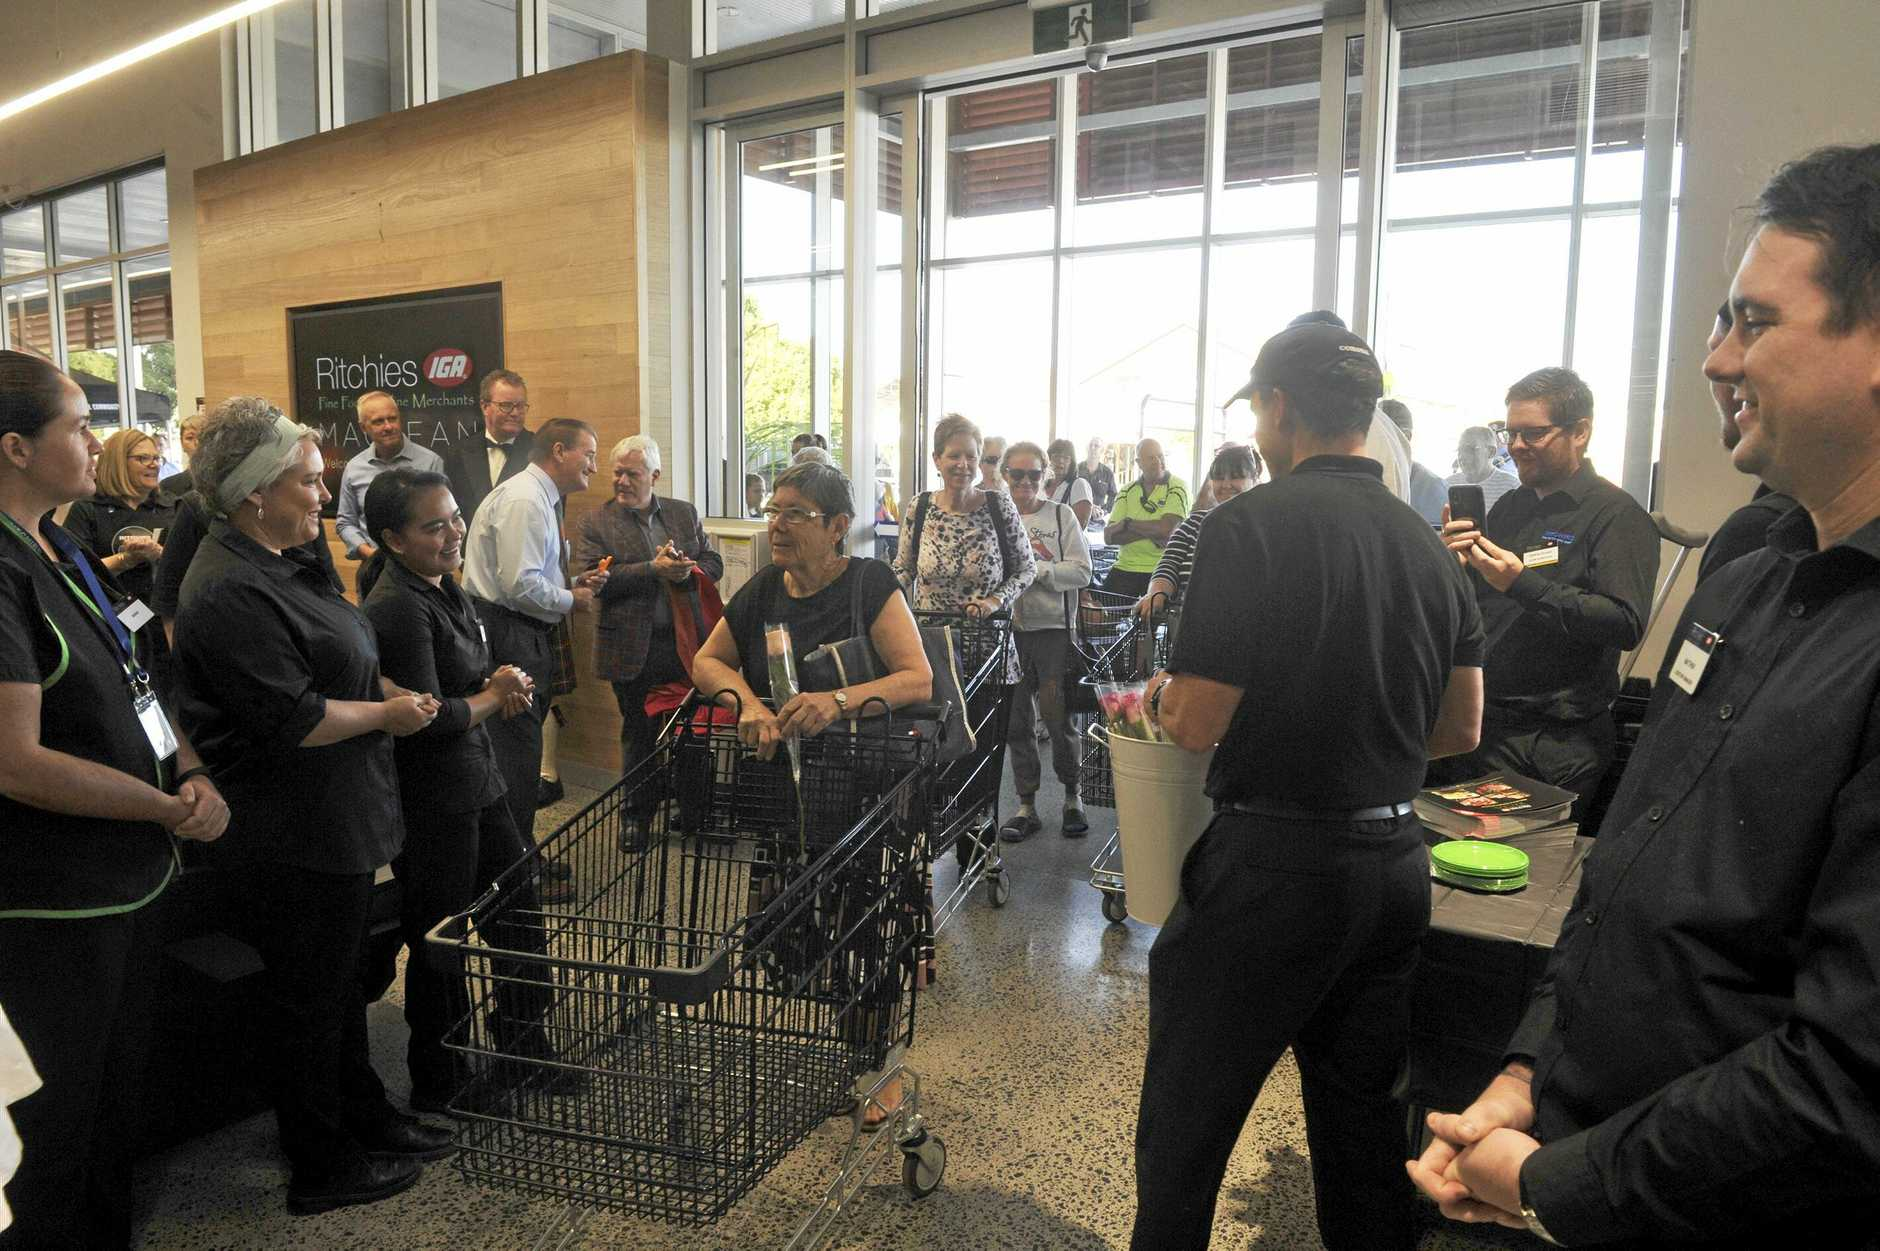 With trolleys in hand, shoppers make their way inside the brave new world of Ritchies IGA supermarket in Maclean.